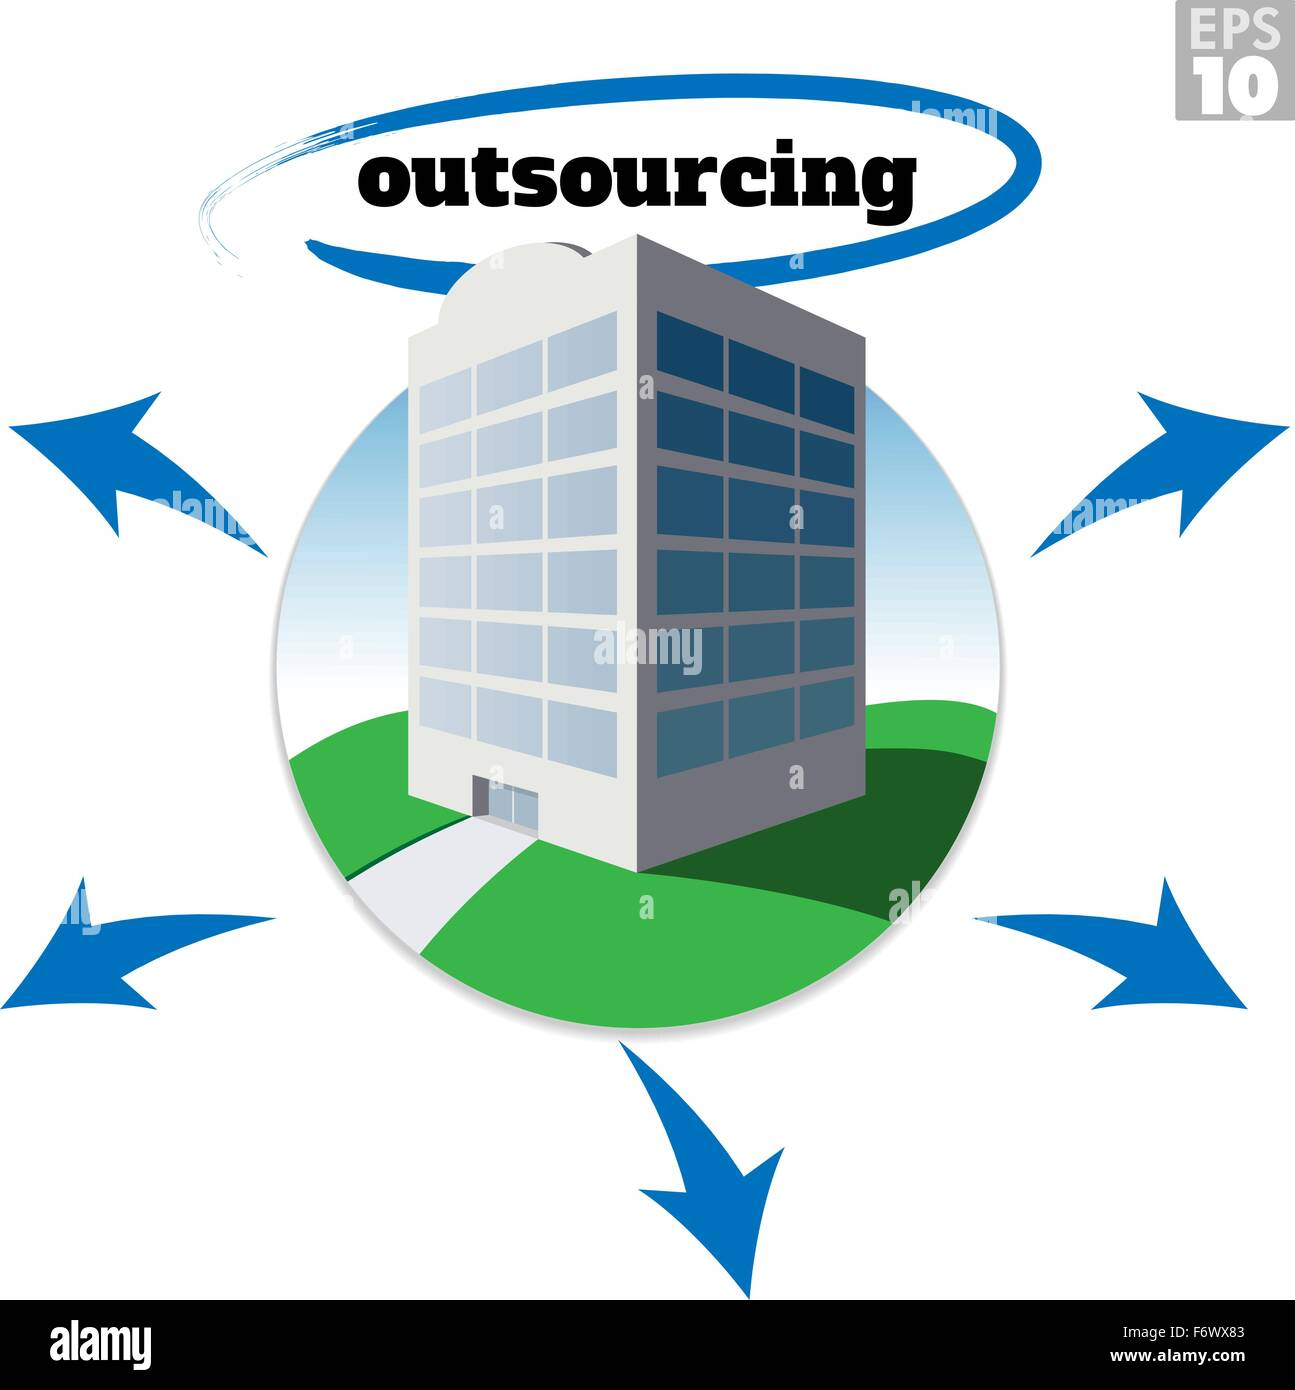 Medium sized company building with outsourcing text and arrows depicting growth or business strategy. - Stock Image